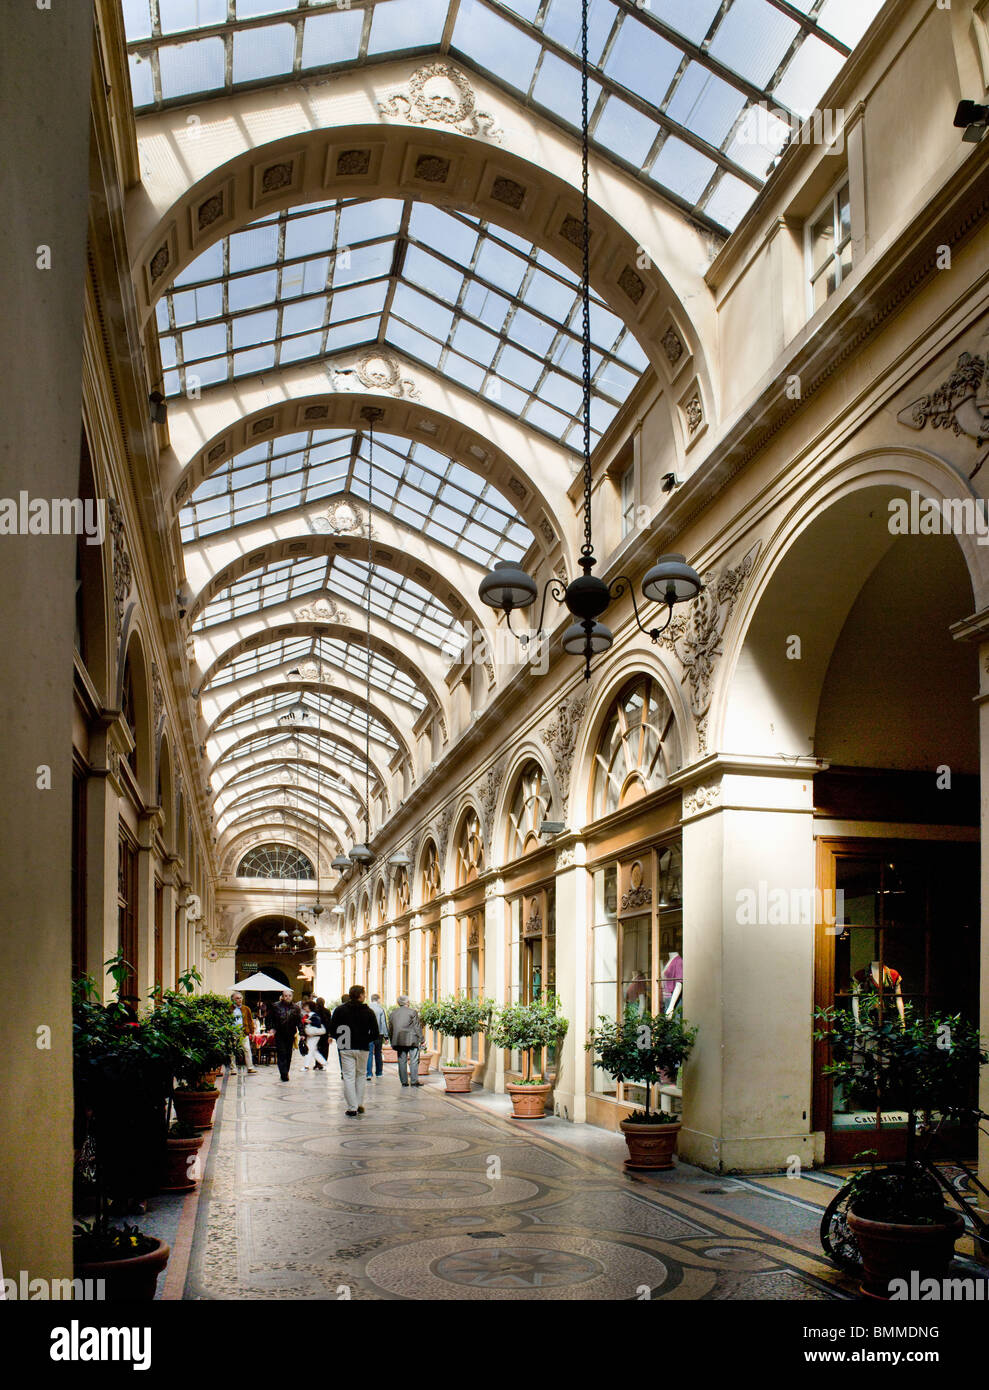 Galerie Vivienne, Paris, France. Shopping arcade, glazed roof and mosaic floors,  constructed in 1823-6 by Marchoux Stock Photo